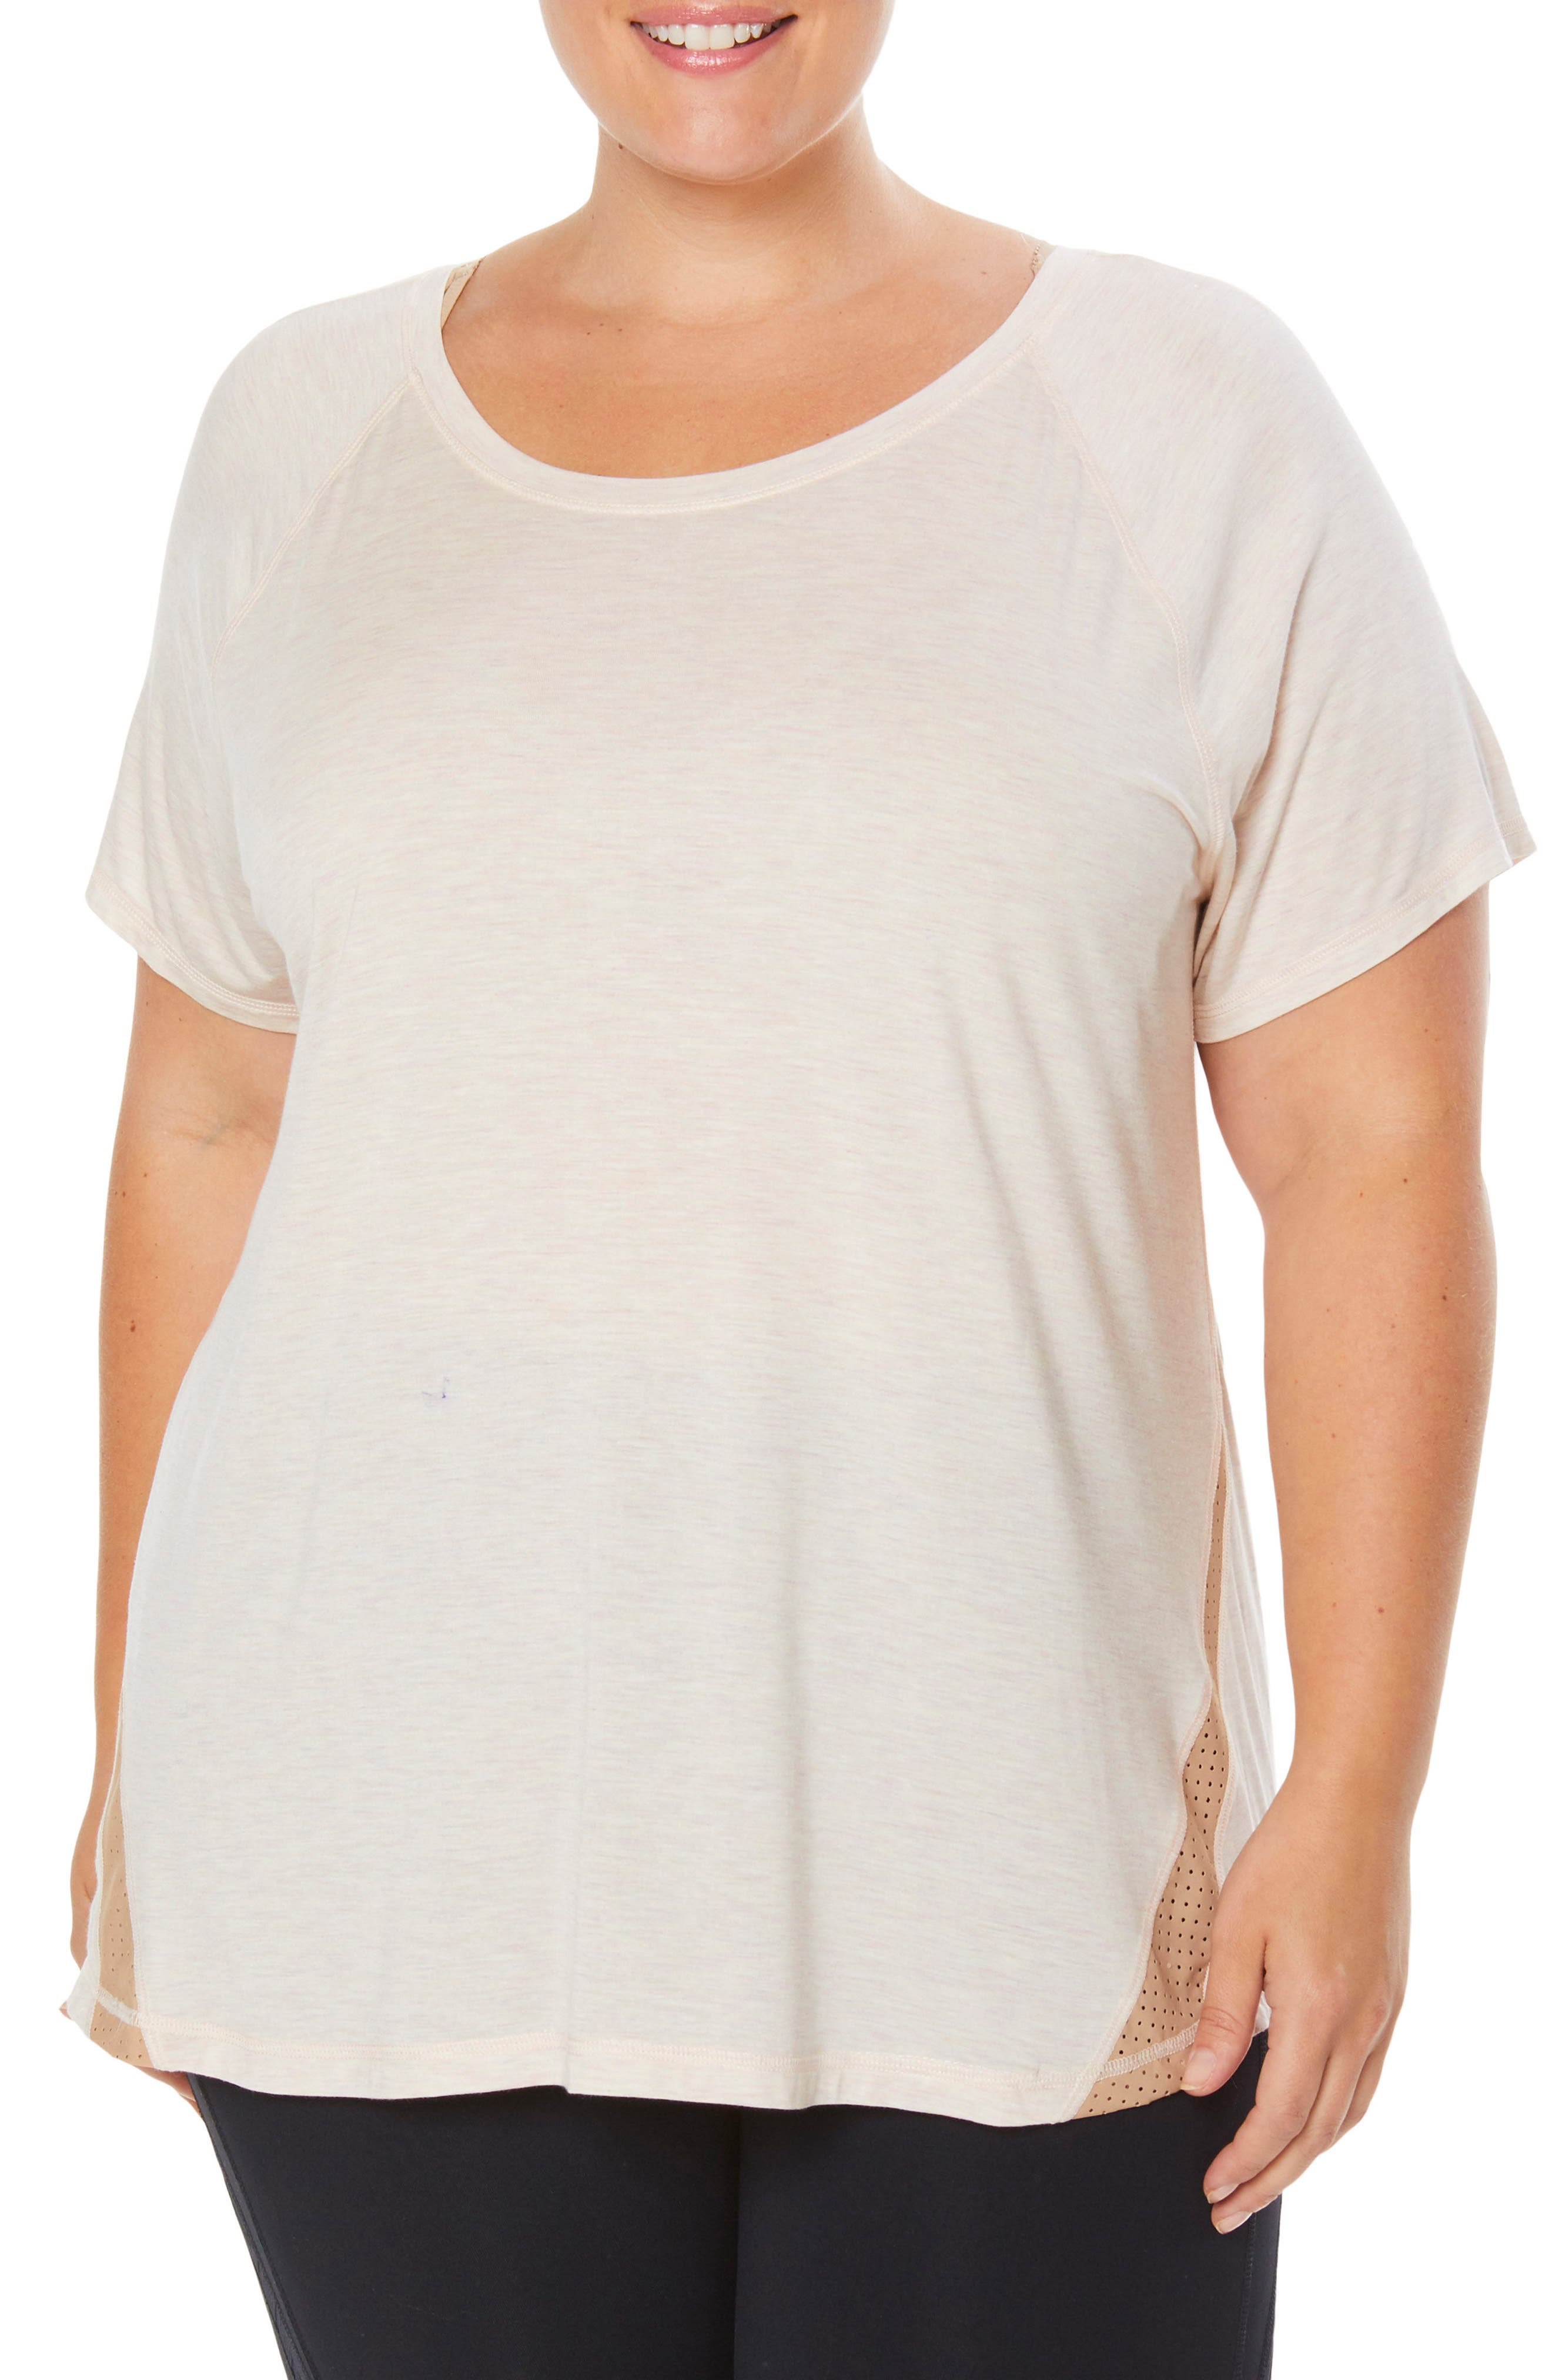 G-Force Tee,                         Main,                         color, PALE PINK / WARM TAUPE